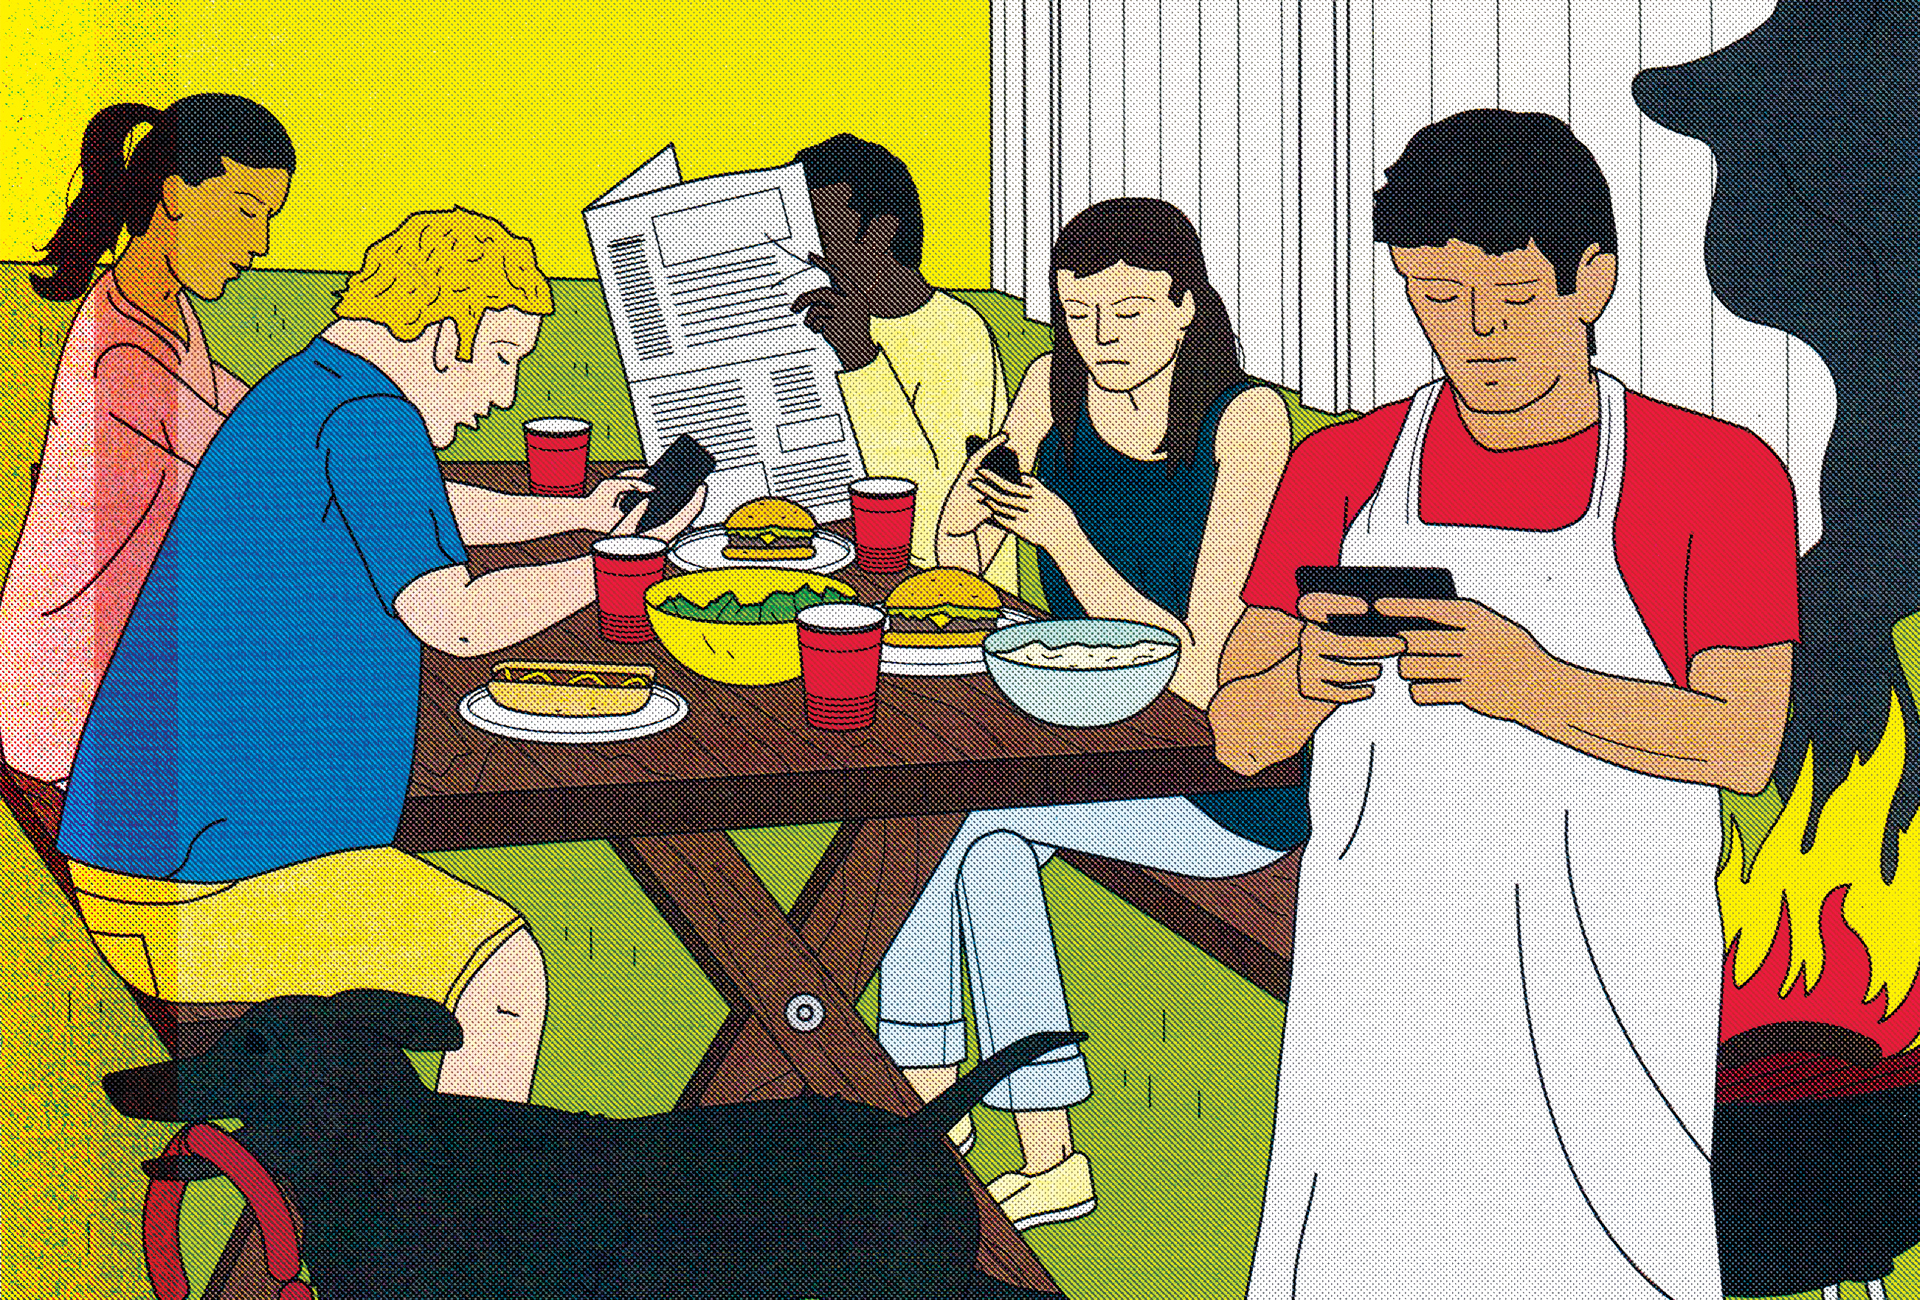 Stylized illustration of a backyard barbecue with all of its guests looking down at their phones and not talking to each other. All the while a fire has begun in the grill and appears to be getting out of control. An excited dog makes off with a link of sausages in its mouth.